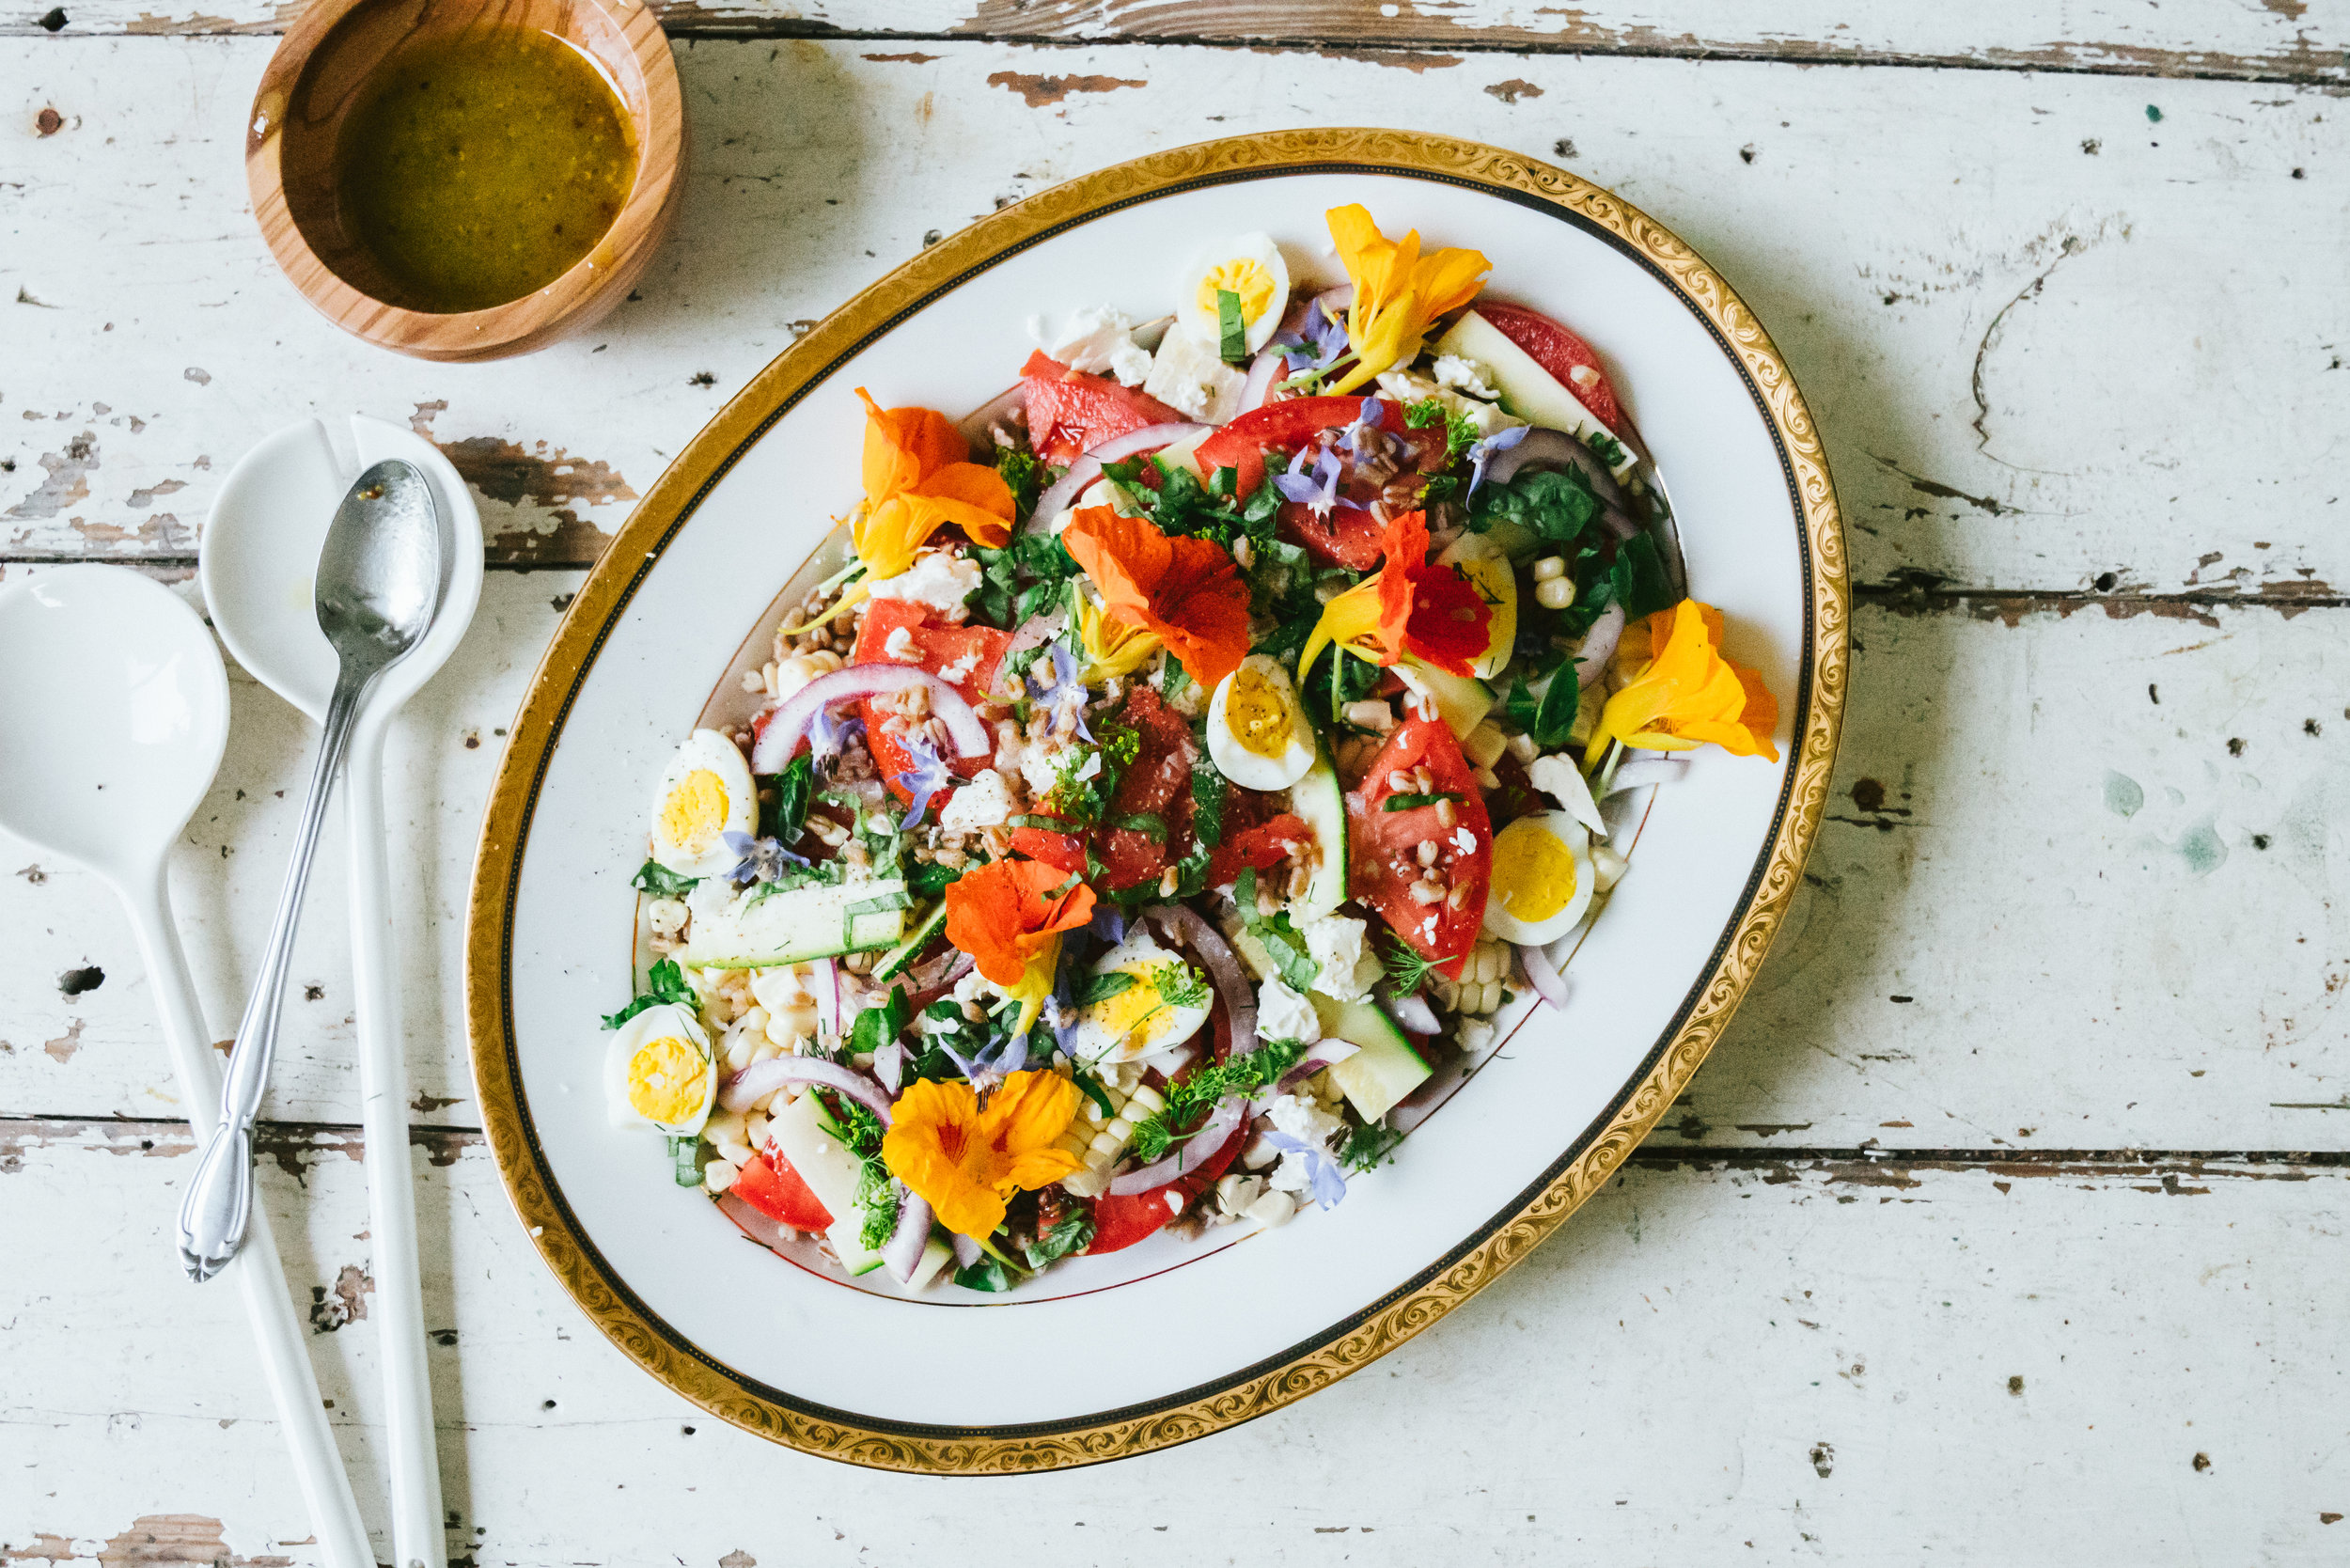 Food and Flowers: June Tomato Salad, Herbs and Country Flowers